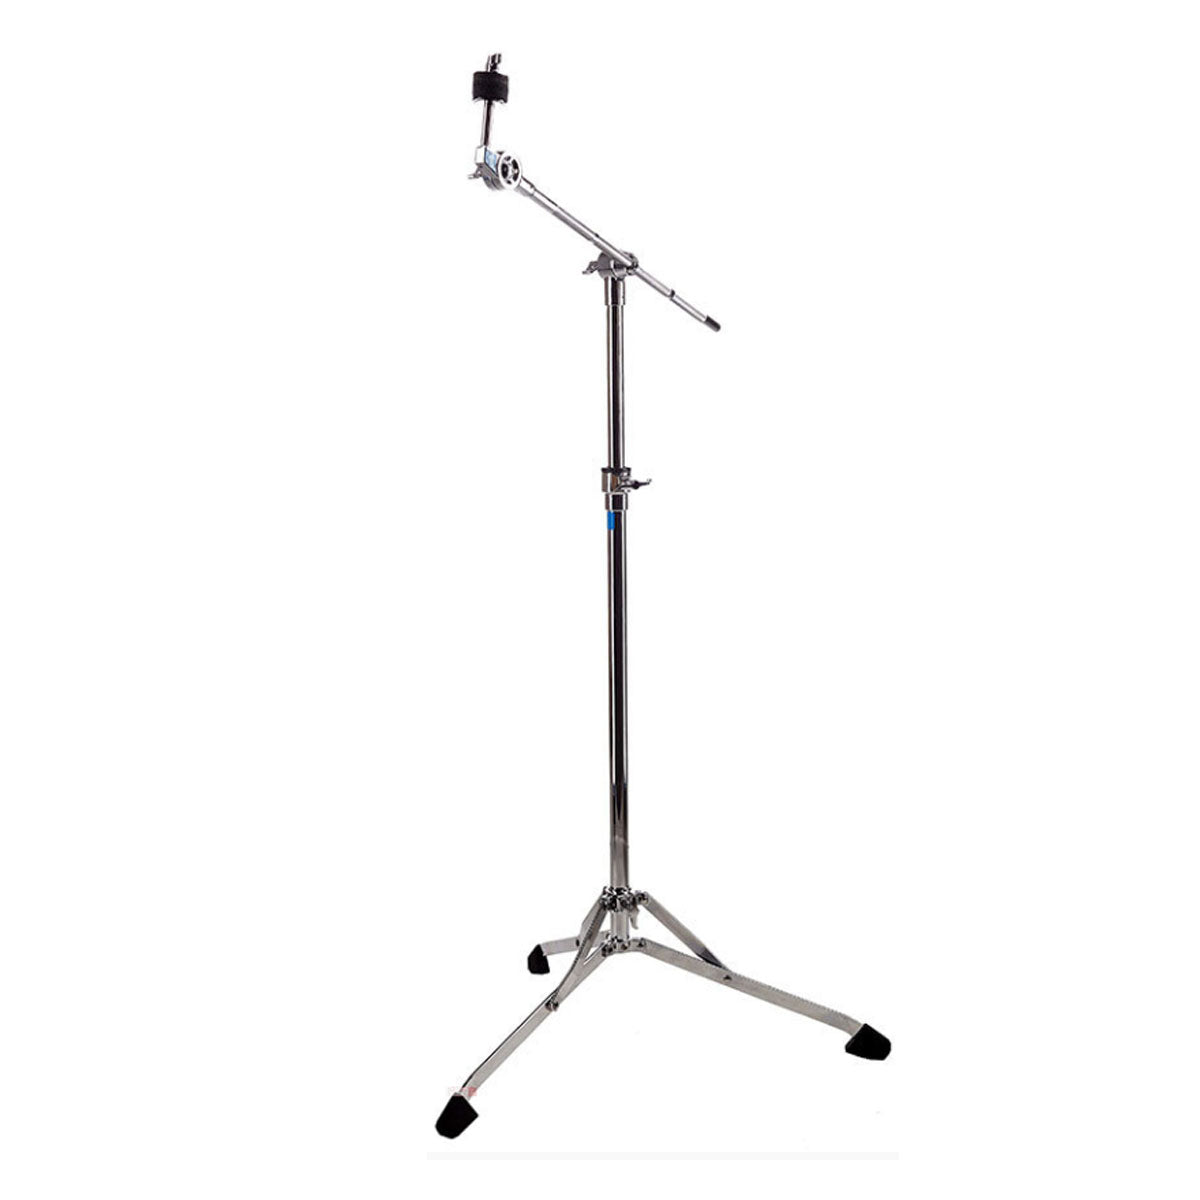 Dixon 9210 Series Boom Cymbal Stand Light-Weight Flat Base - PSY9210I